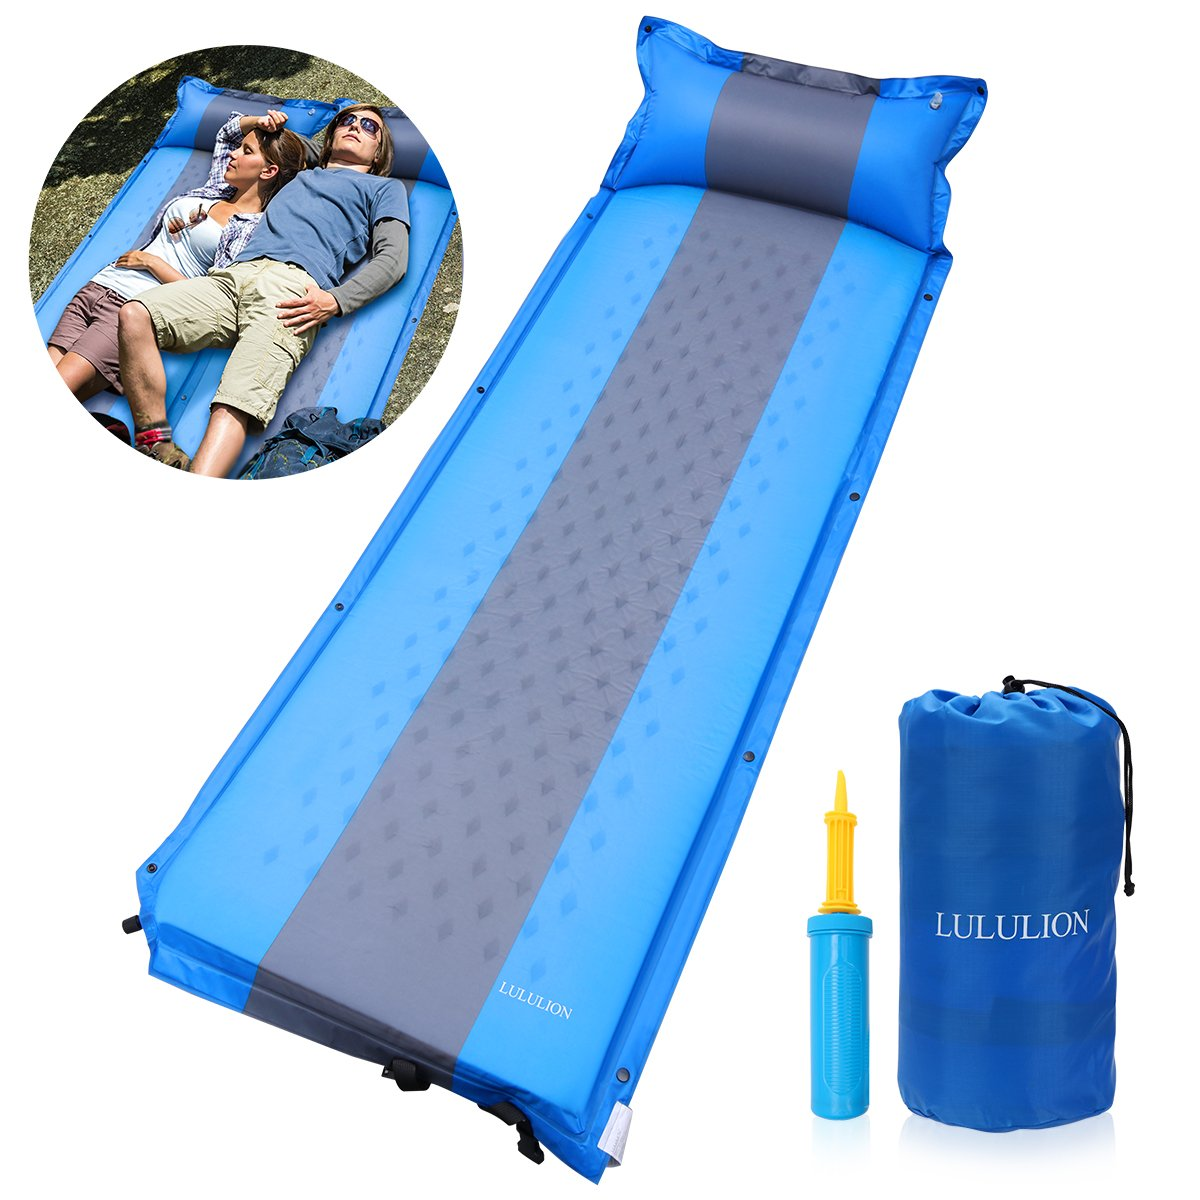 LULULION Self Inflating Sleeping Pad, Foam Camping Mat with Pillow Light Weight Camping Air Mattress for Hiking Backpacking Indoor Party- Air Pump Included